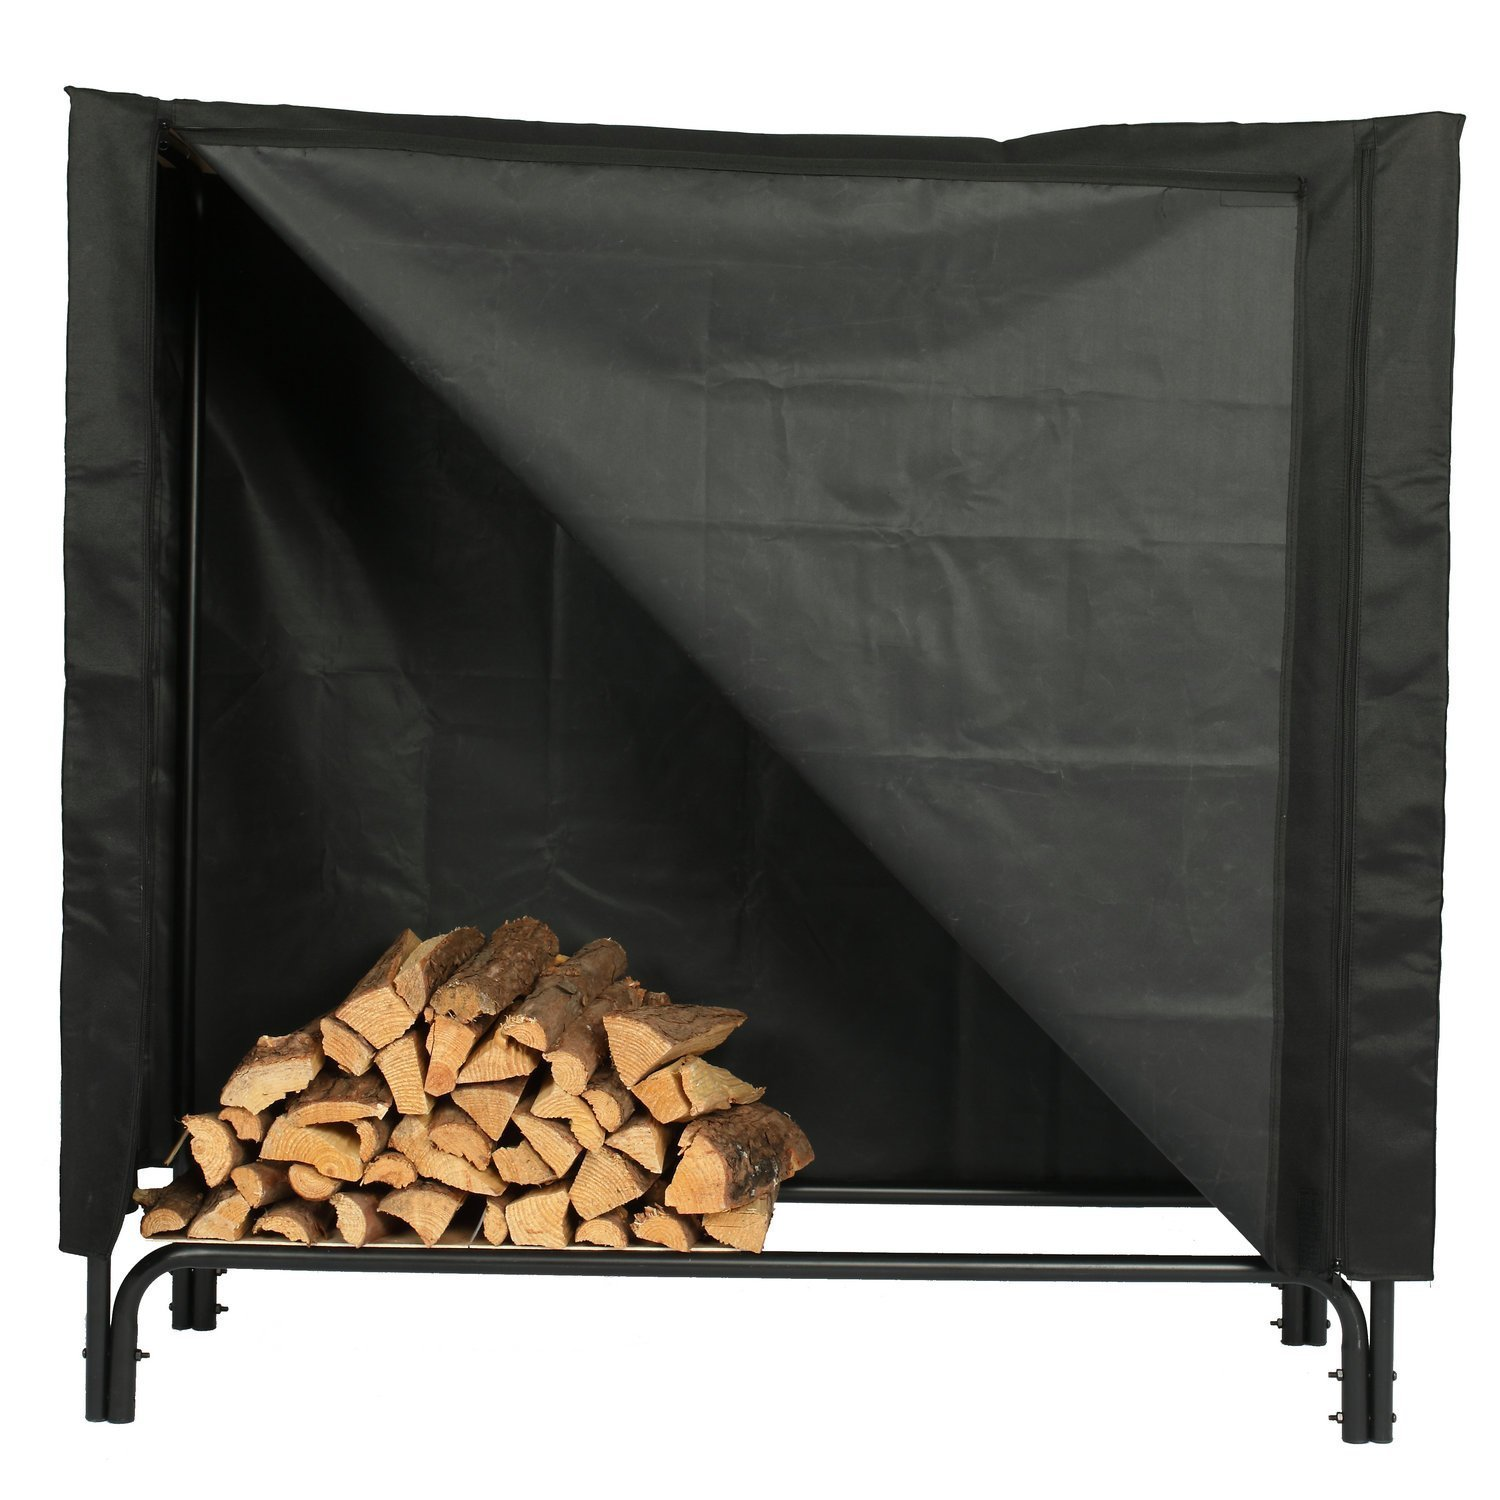 soldbbq 4-Foot Heavy-duty polyester Decorative Firewood Log Rack Cover, Black